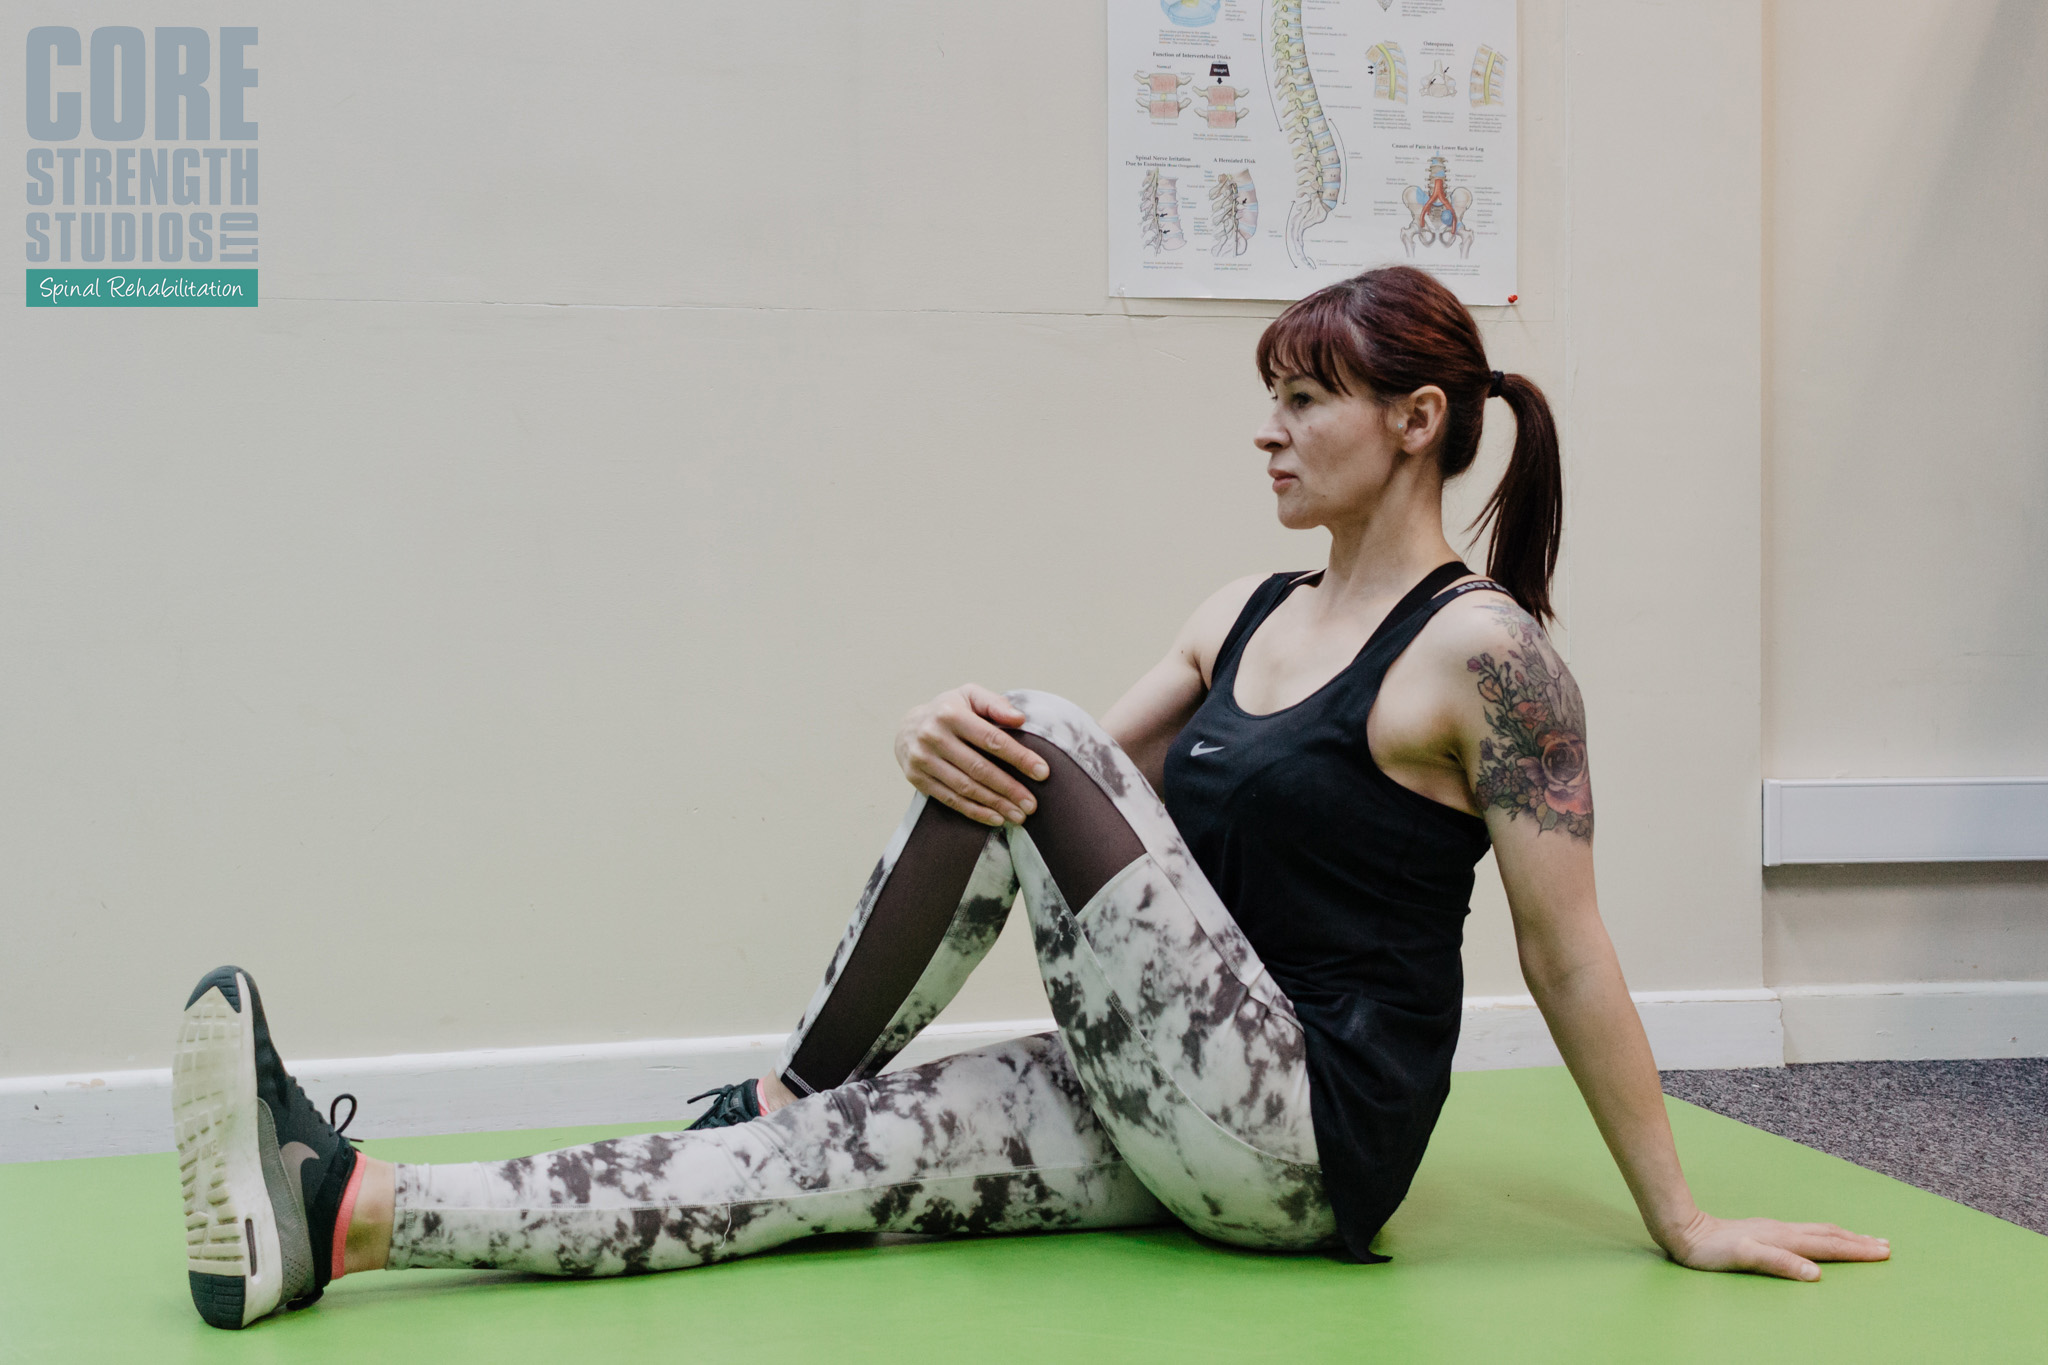 Sit tall with one leg outstretched. Bend the other and cross it over the other leg, keeping your foot on the floor. Use your arm to gently pull the bent keg into your body until you feel the stretch in your buttock.